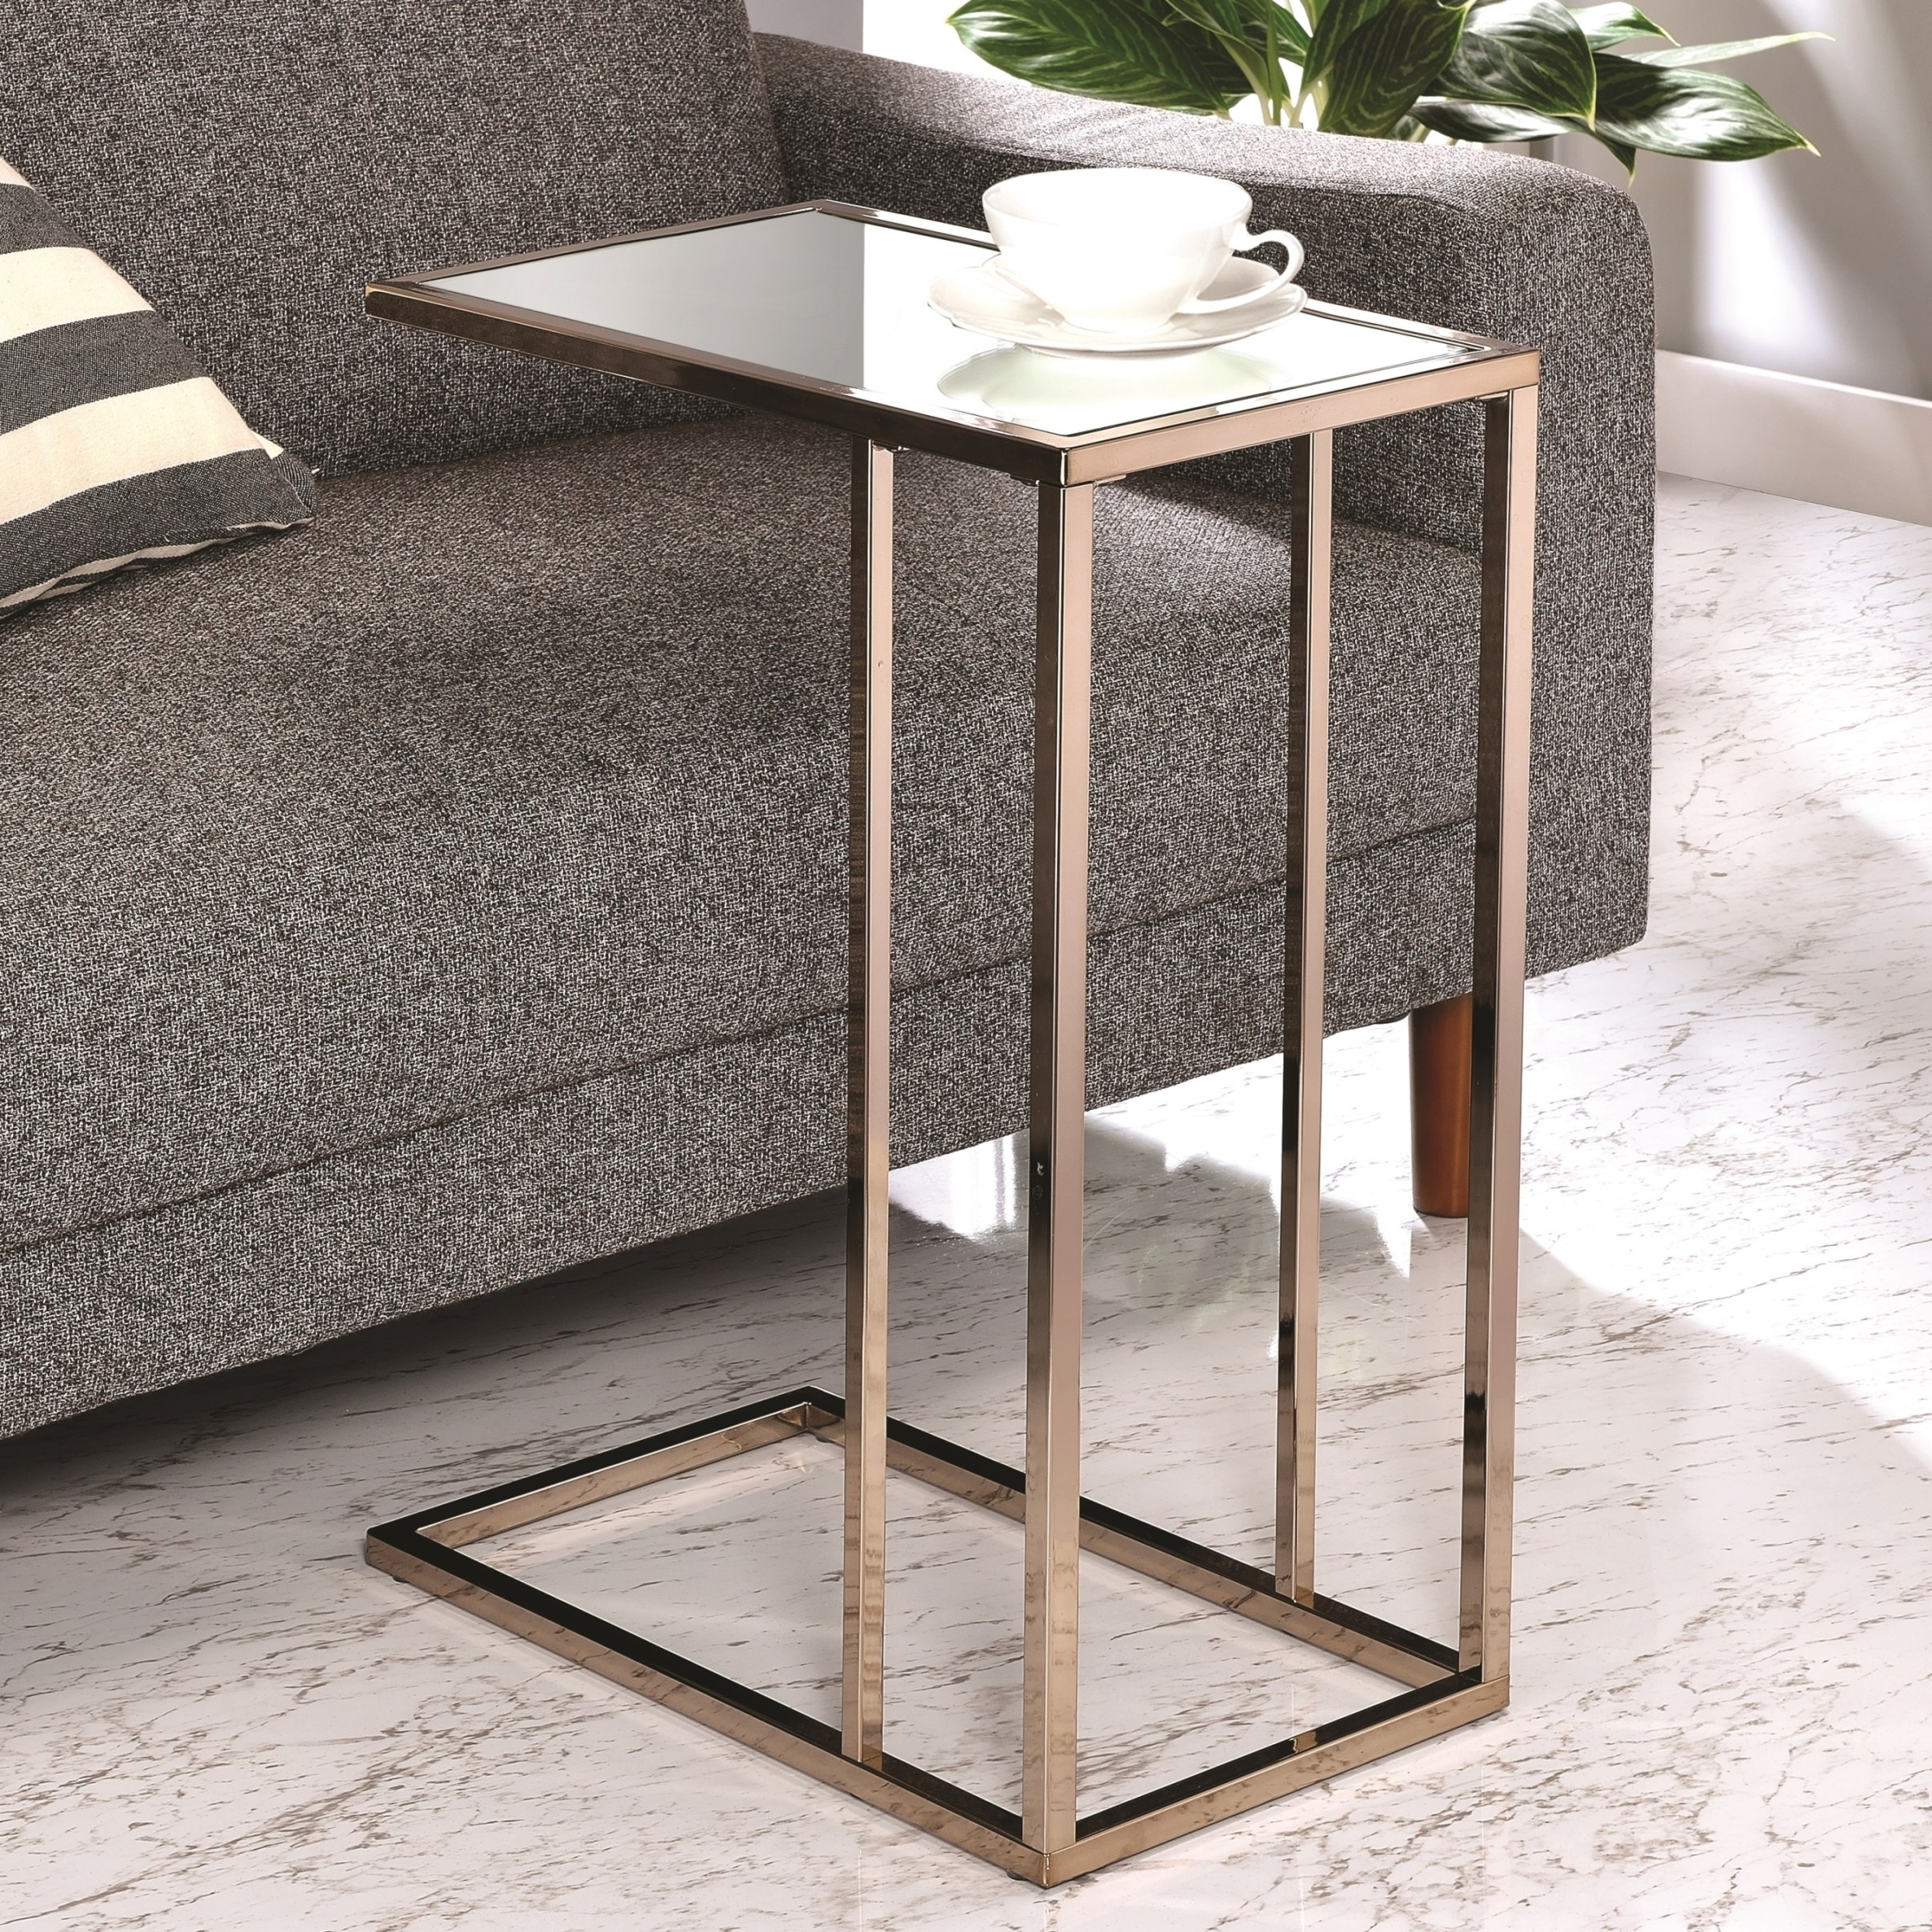 modern design chocolate chrome living room accent table with tempered mirrored glass top free shipping today the outdoor furniture changing dimensions amish made corner lamp tall